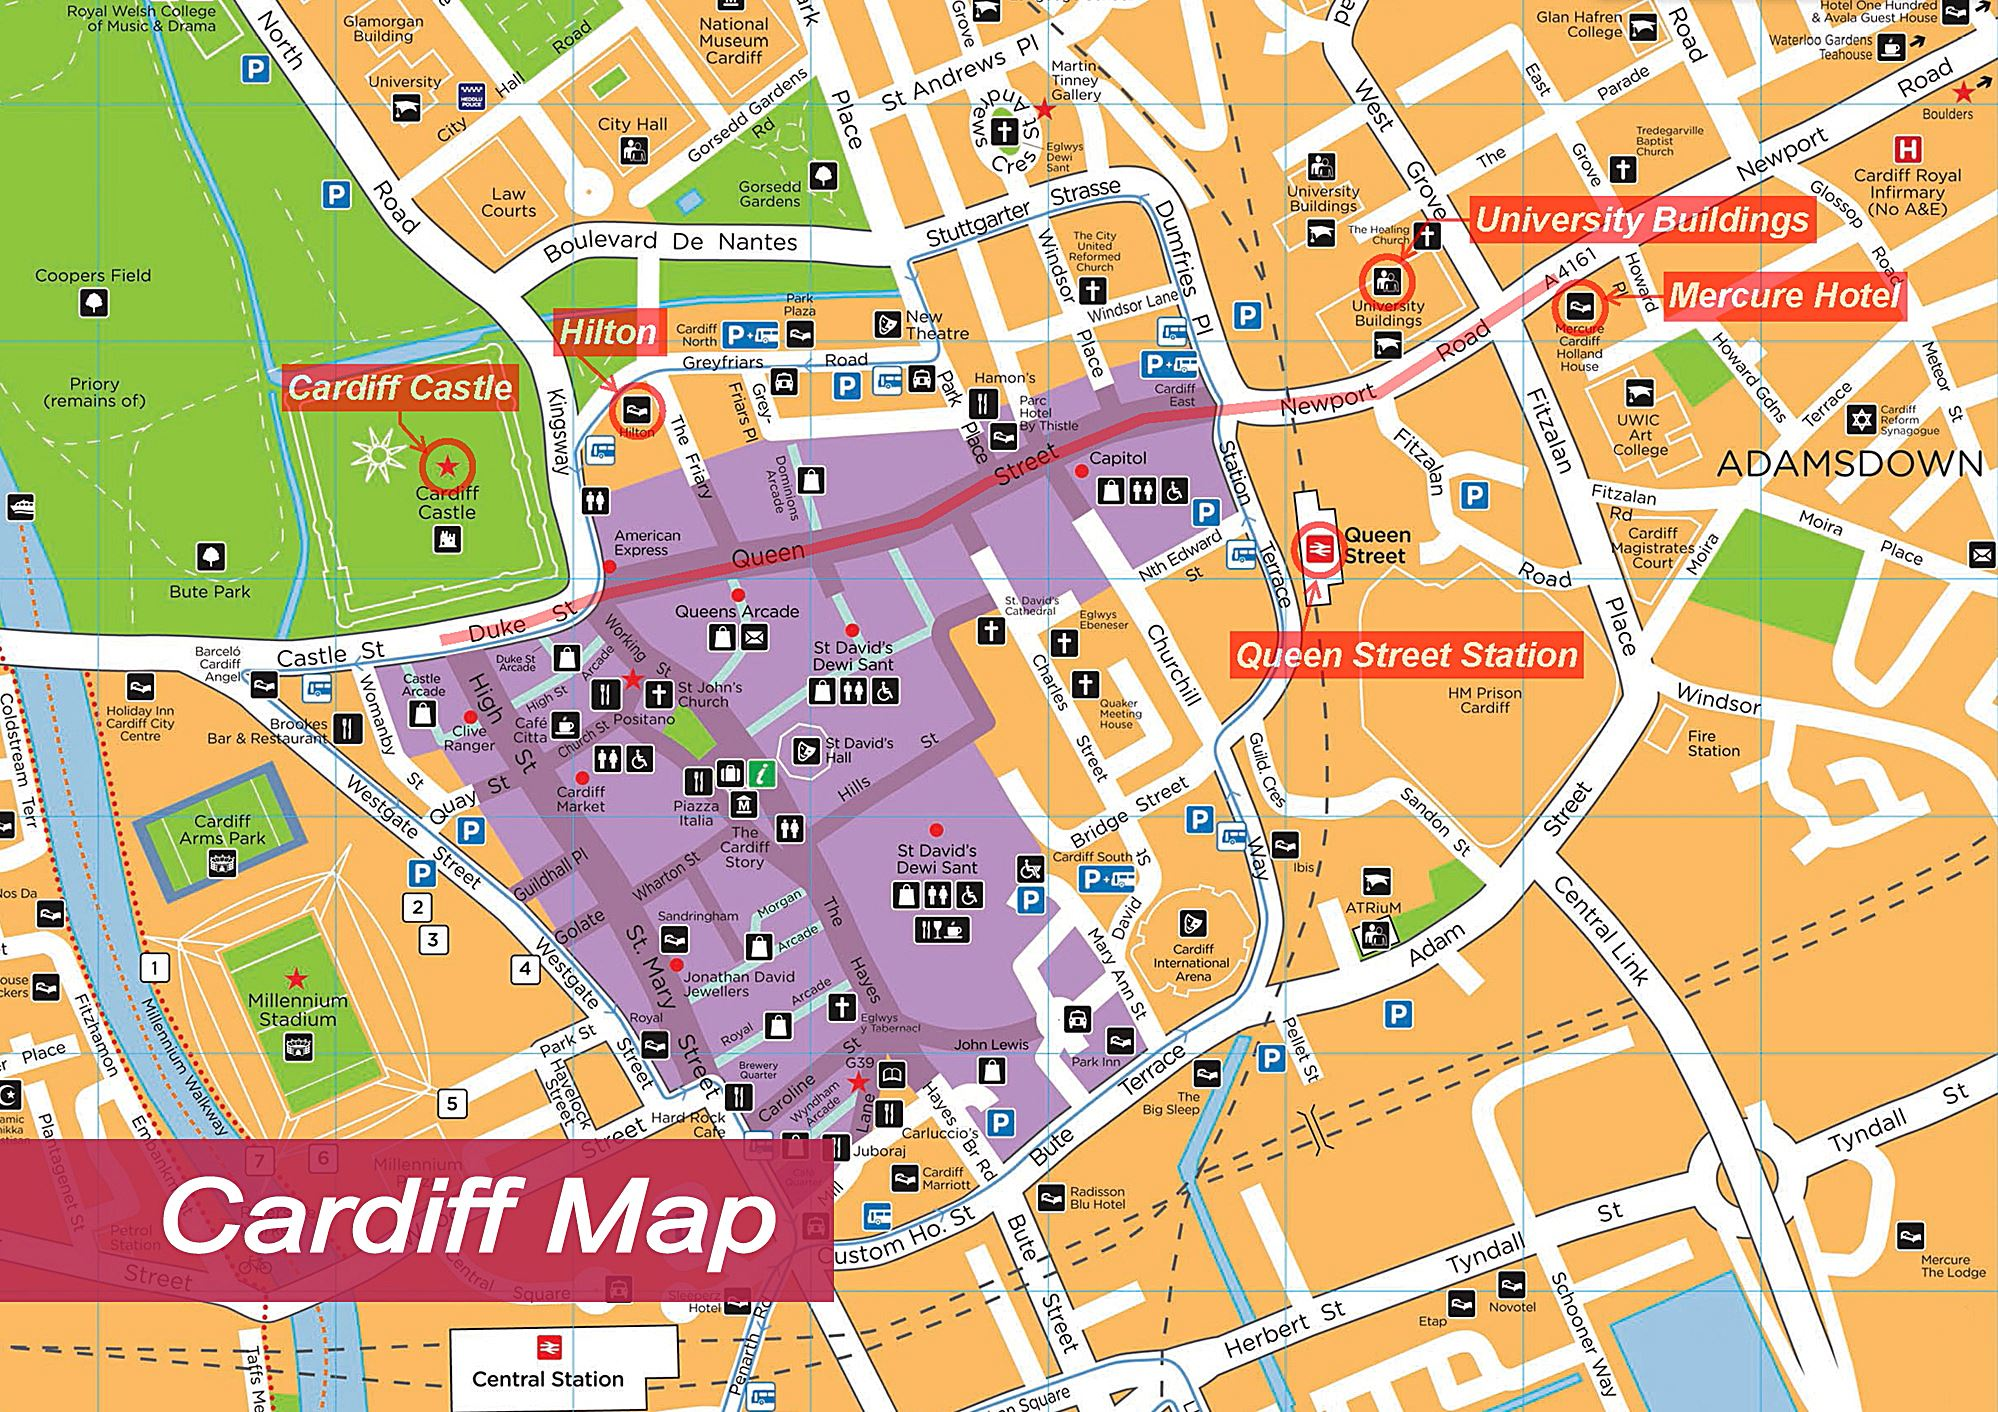 http://www.orangesmile.com/common/img_city_maps/cardiff-map-0.jpg